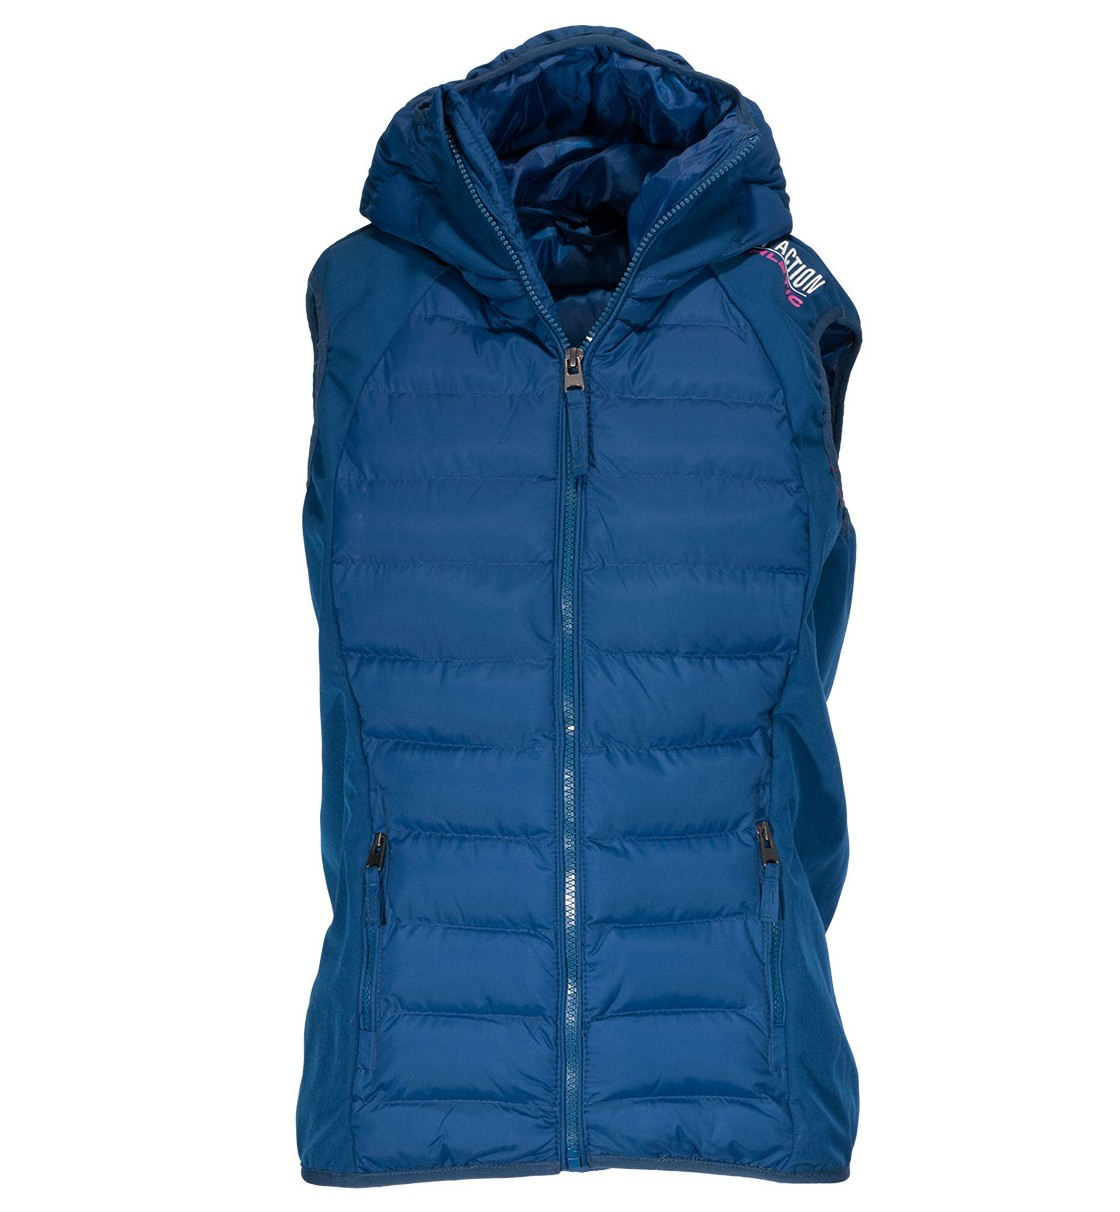 Body Action Women Slim Fit Zip Up Hooded Vest